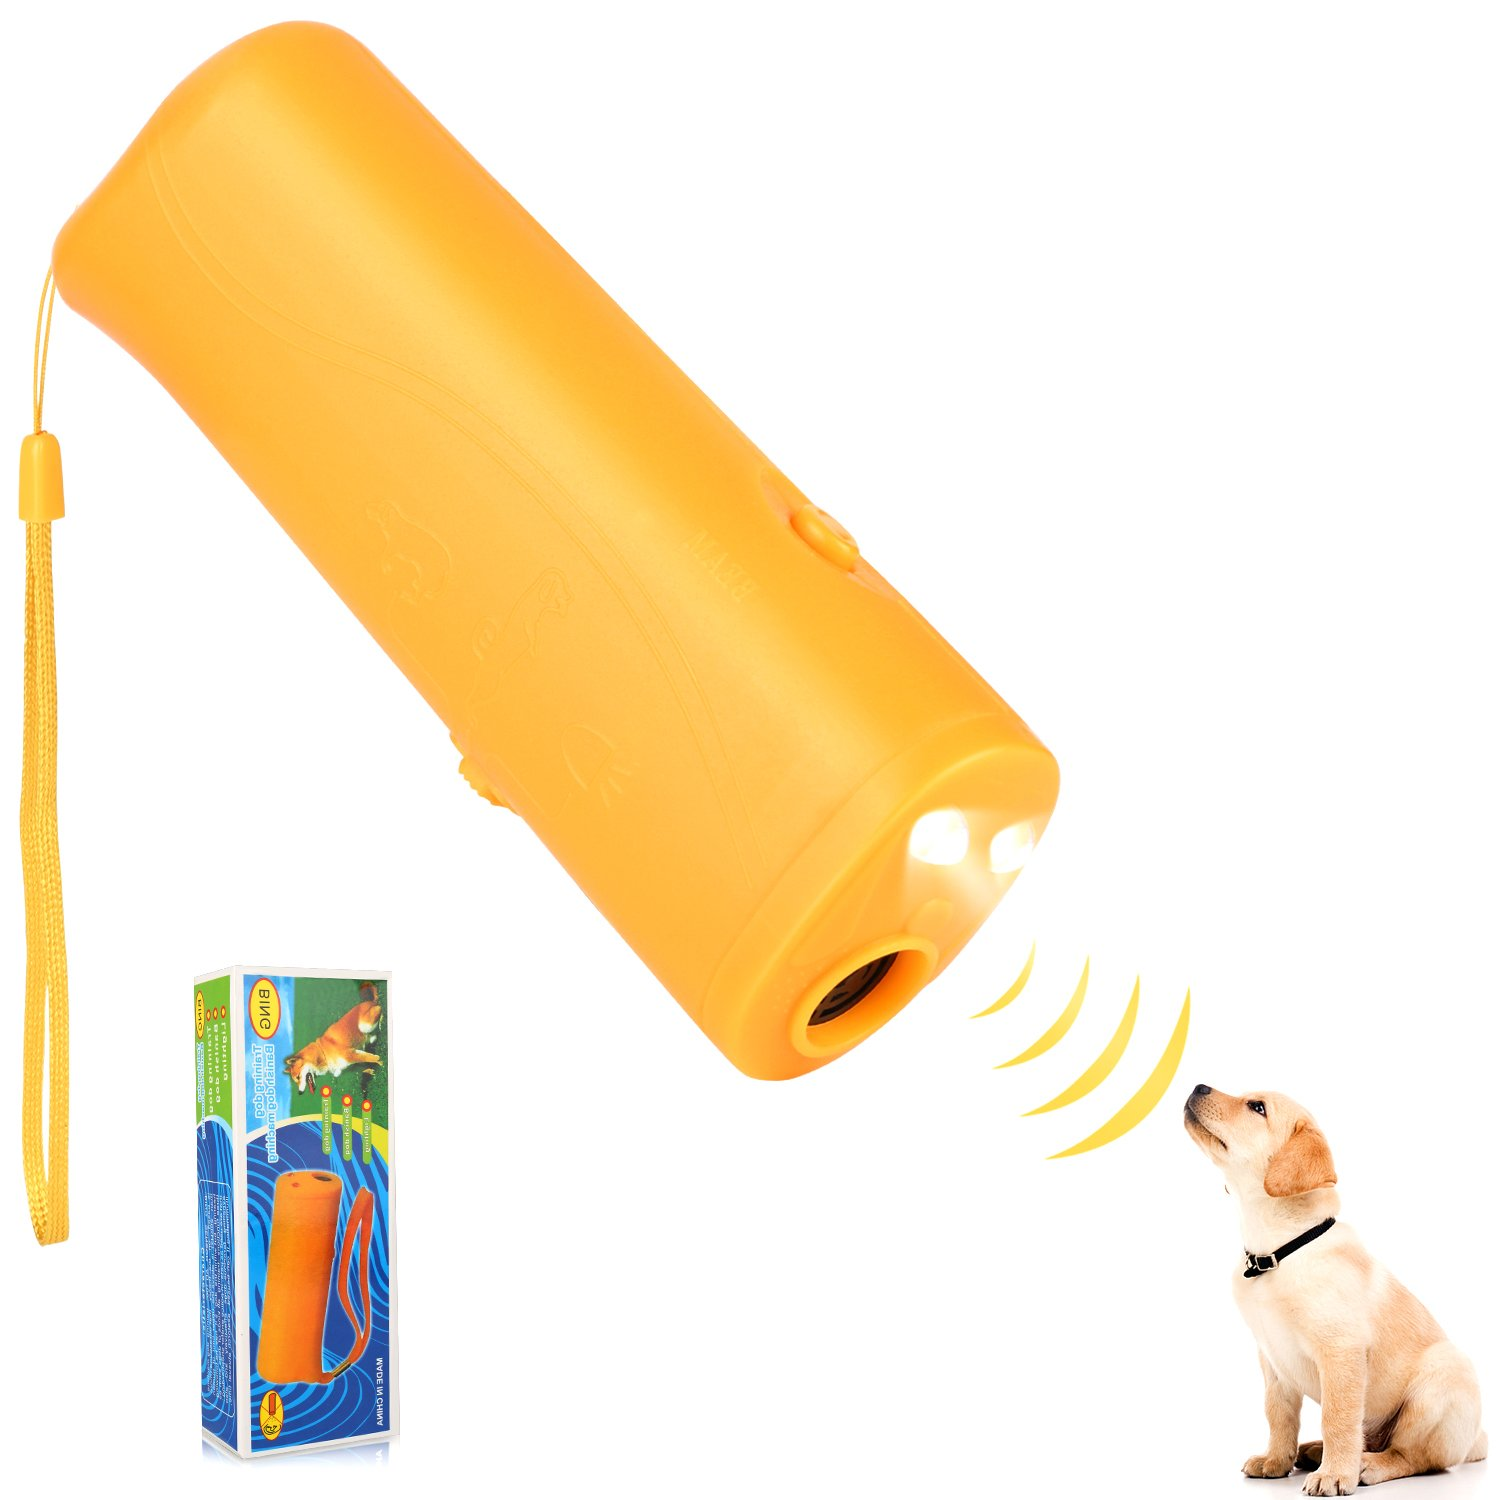 Airsspu Anti Barking Stop Bark Handheld 3 in 1 LED Ultrasonic Dog Repeller and Trainer Device